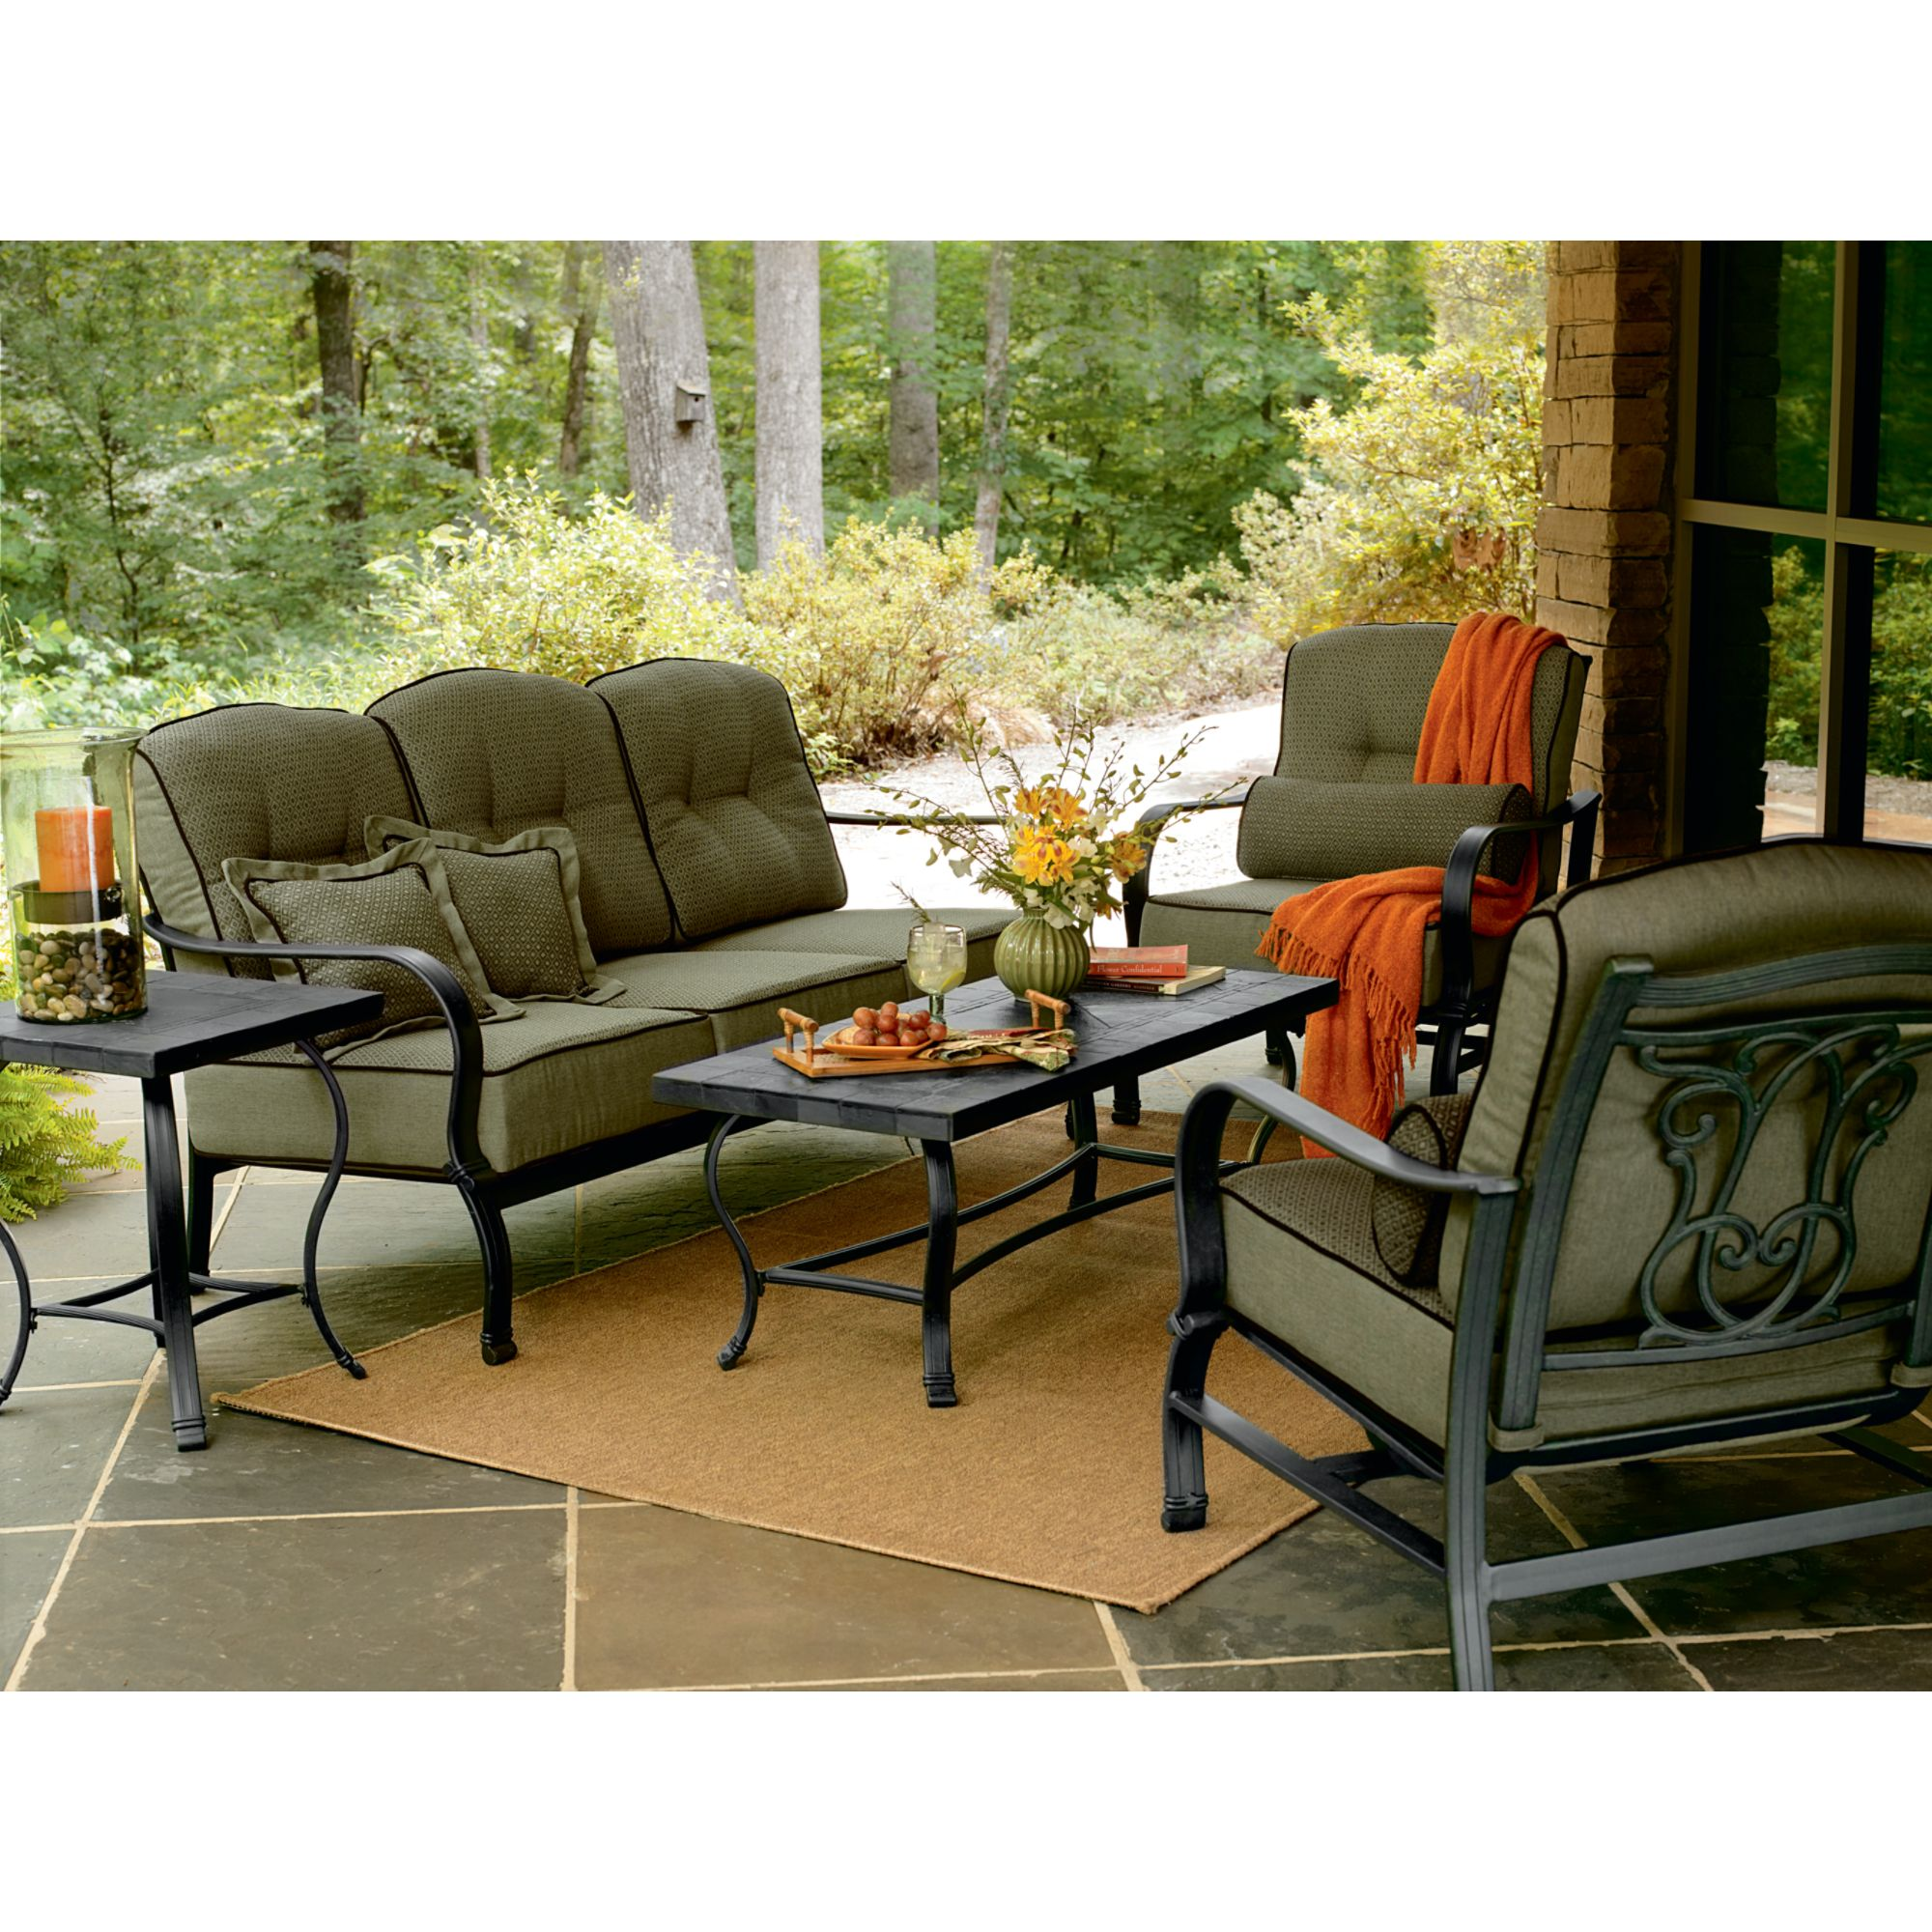 Hadley 5 Pc. Patio Seating Set: Live Outdoors With Cool Ideas At Sears